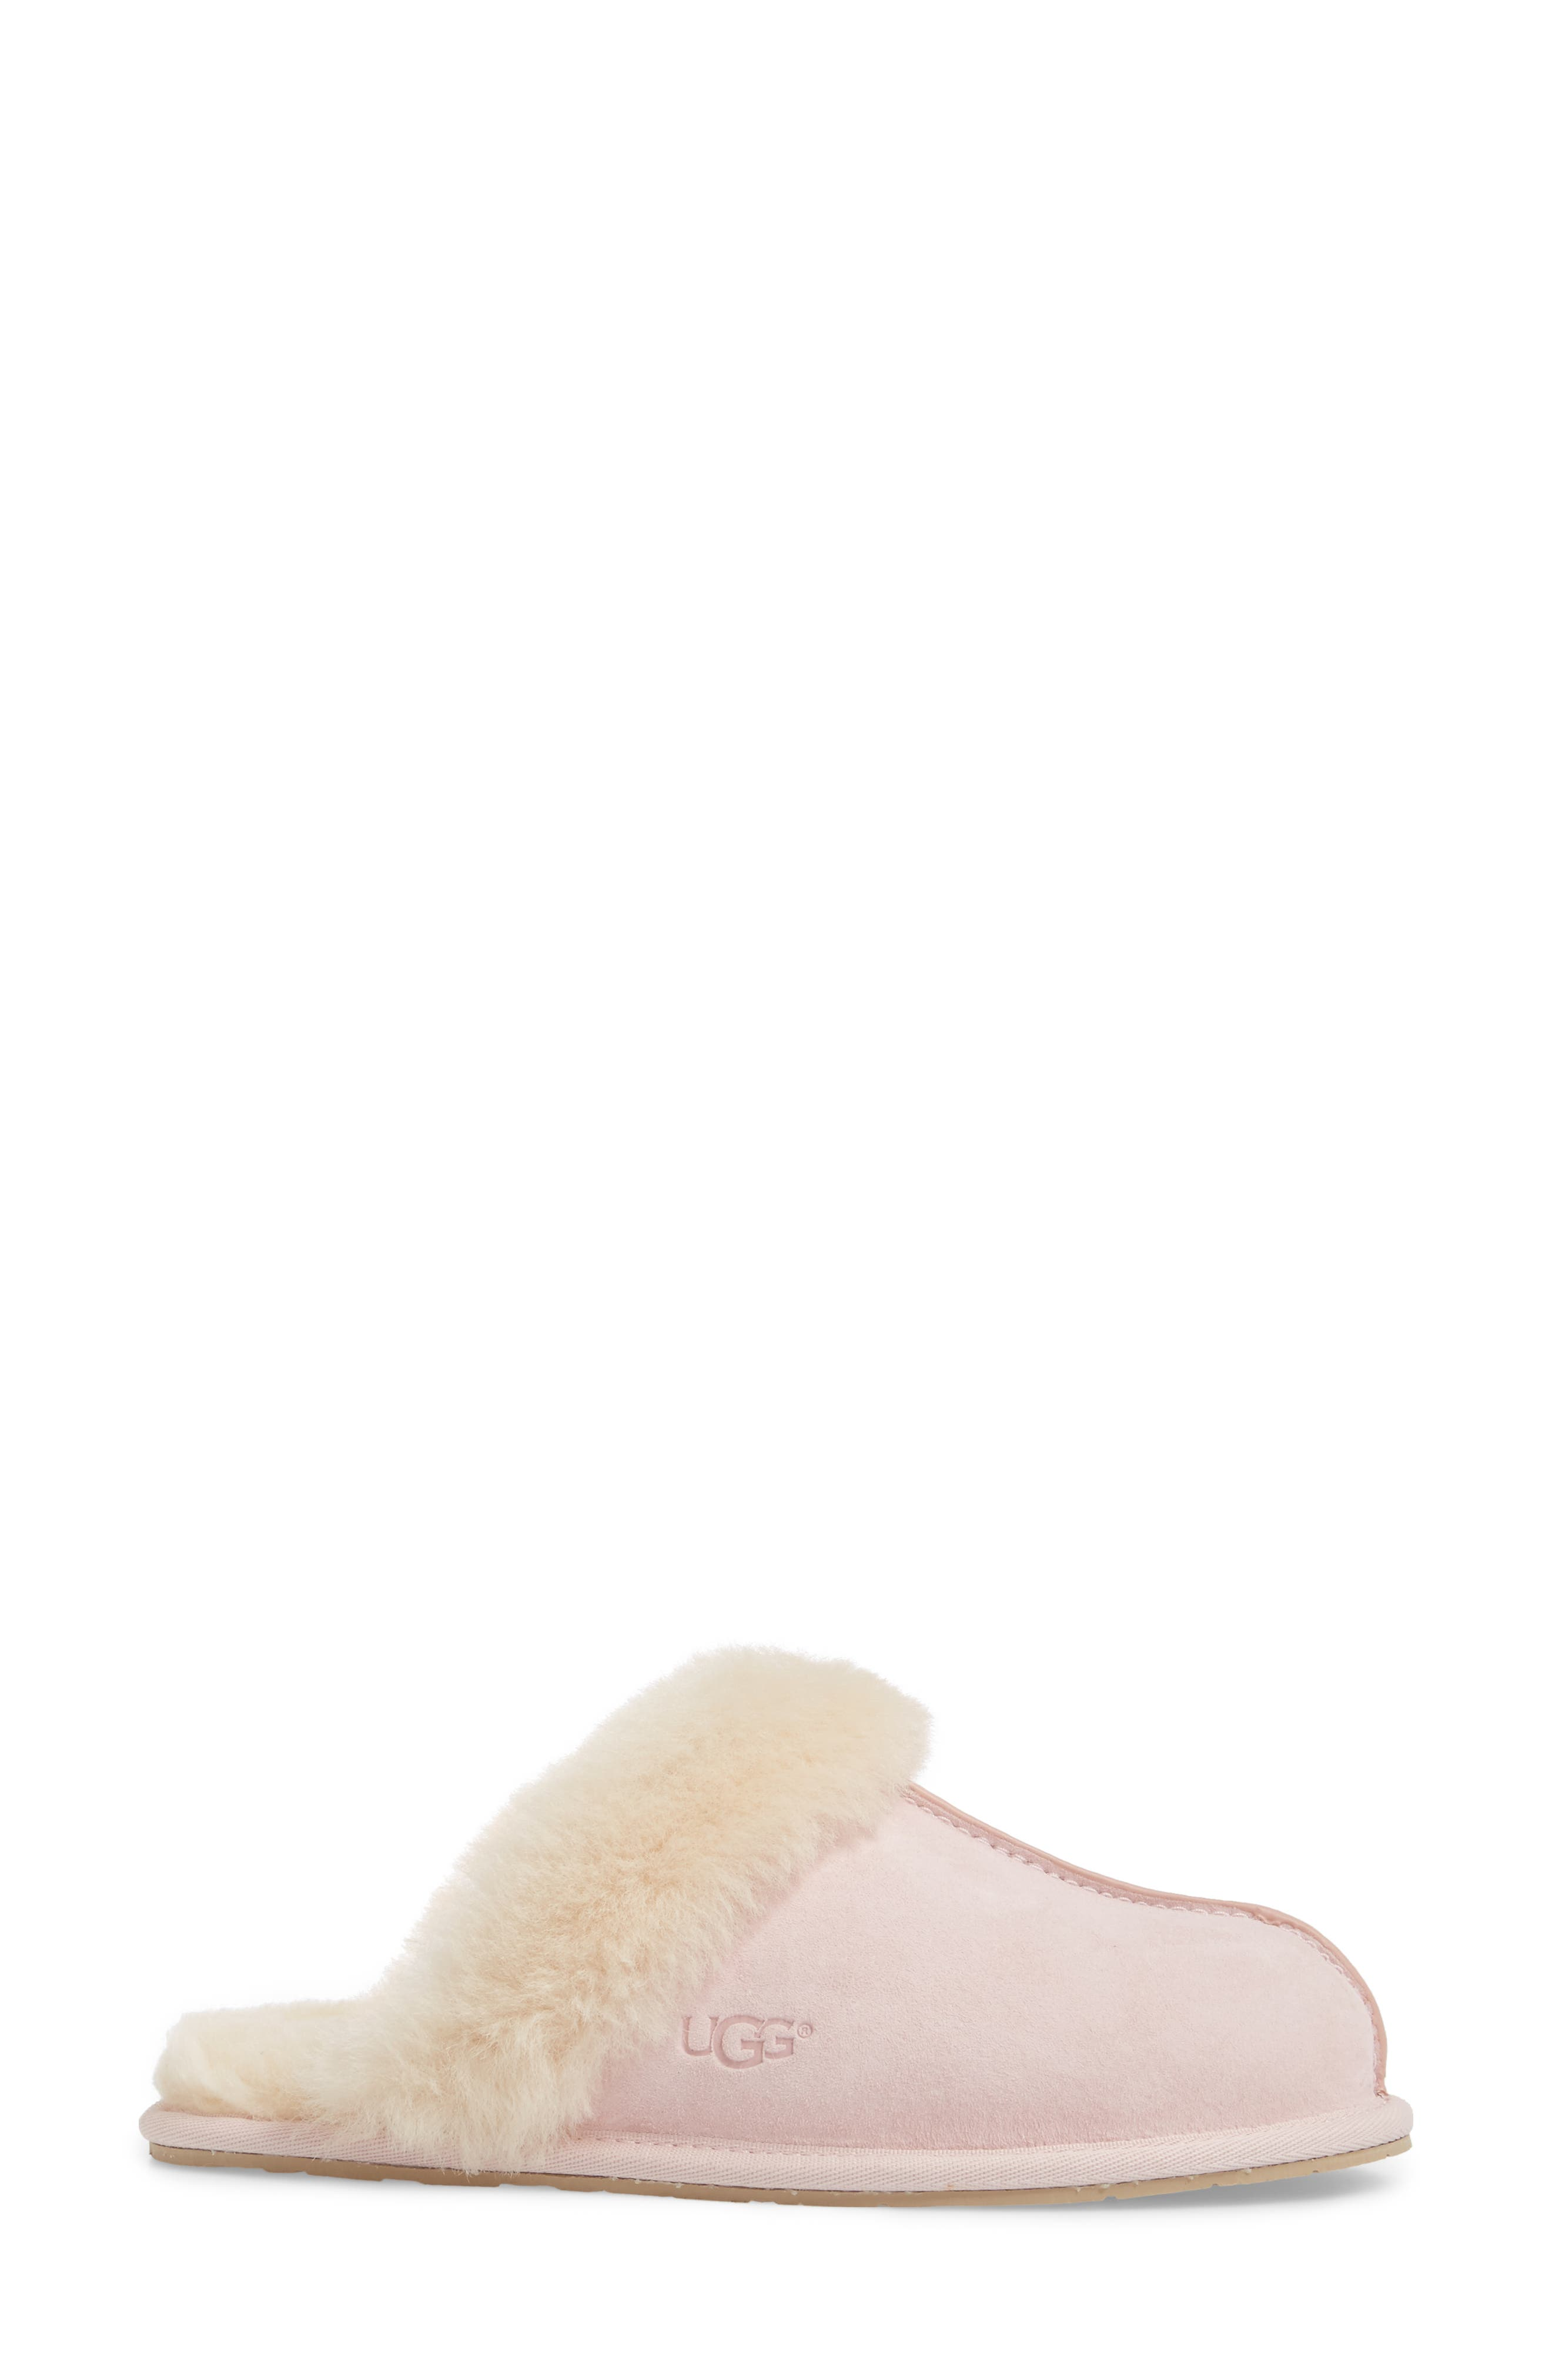 ,                             Scuffette II Water Resistant Slipper,                             Alternate thumbnail 51, color,                             689